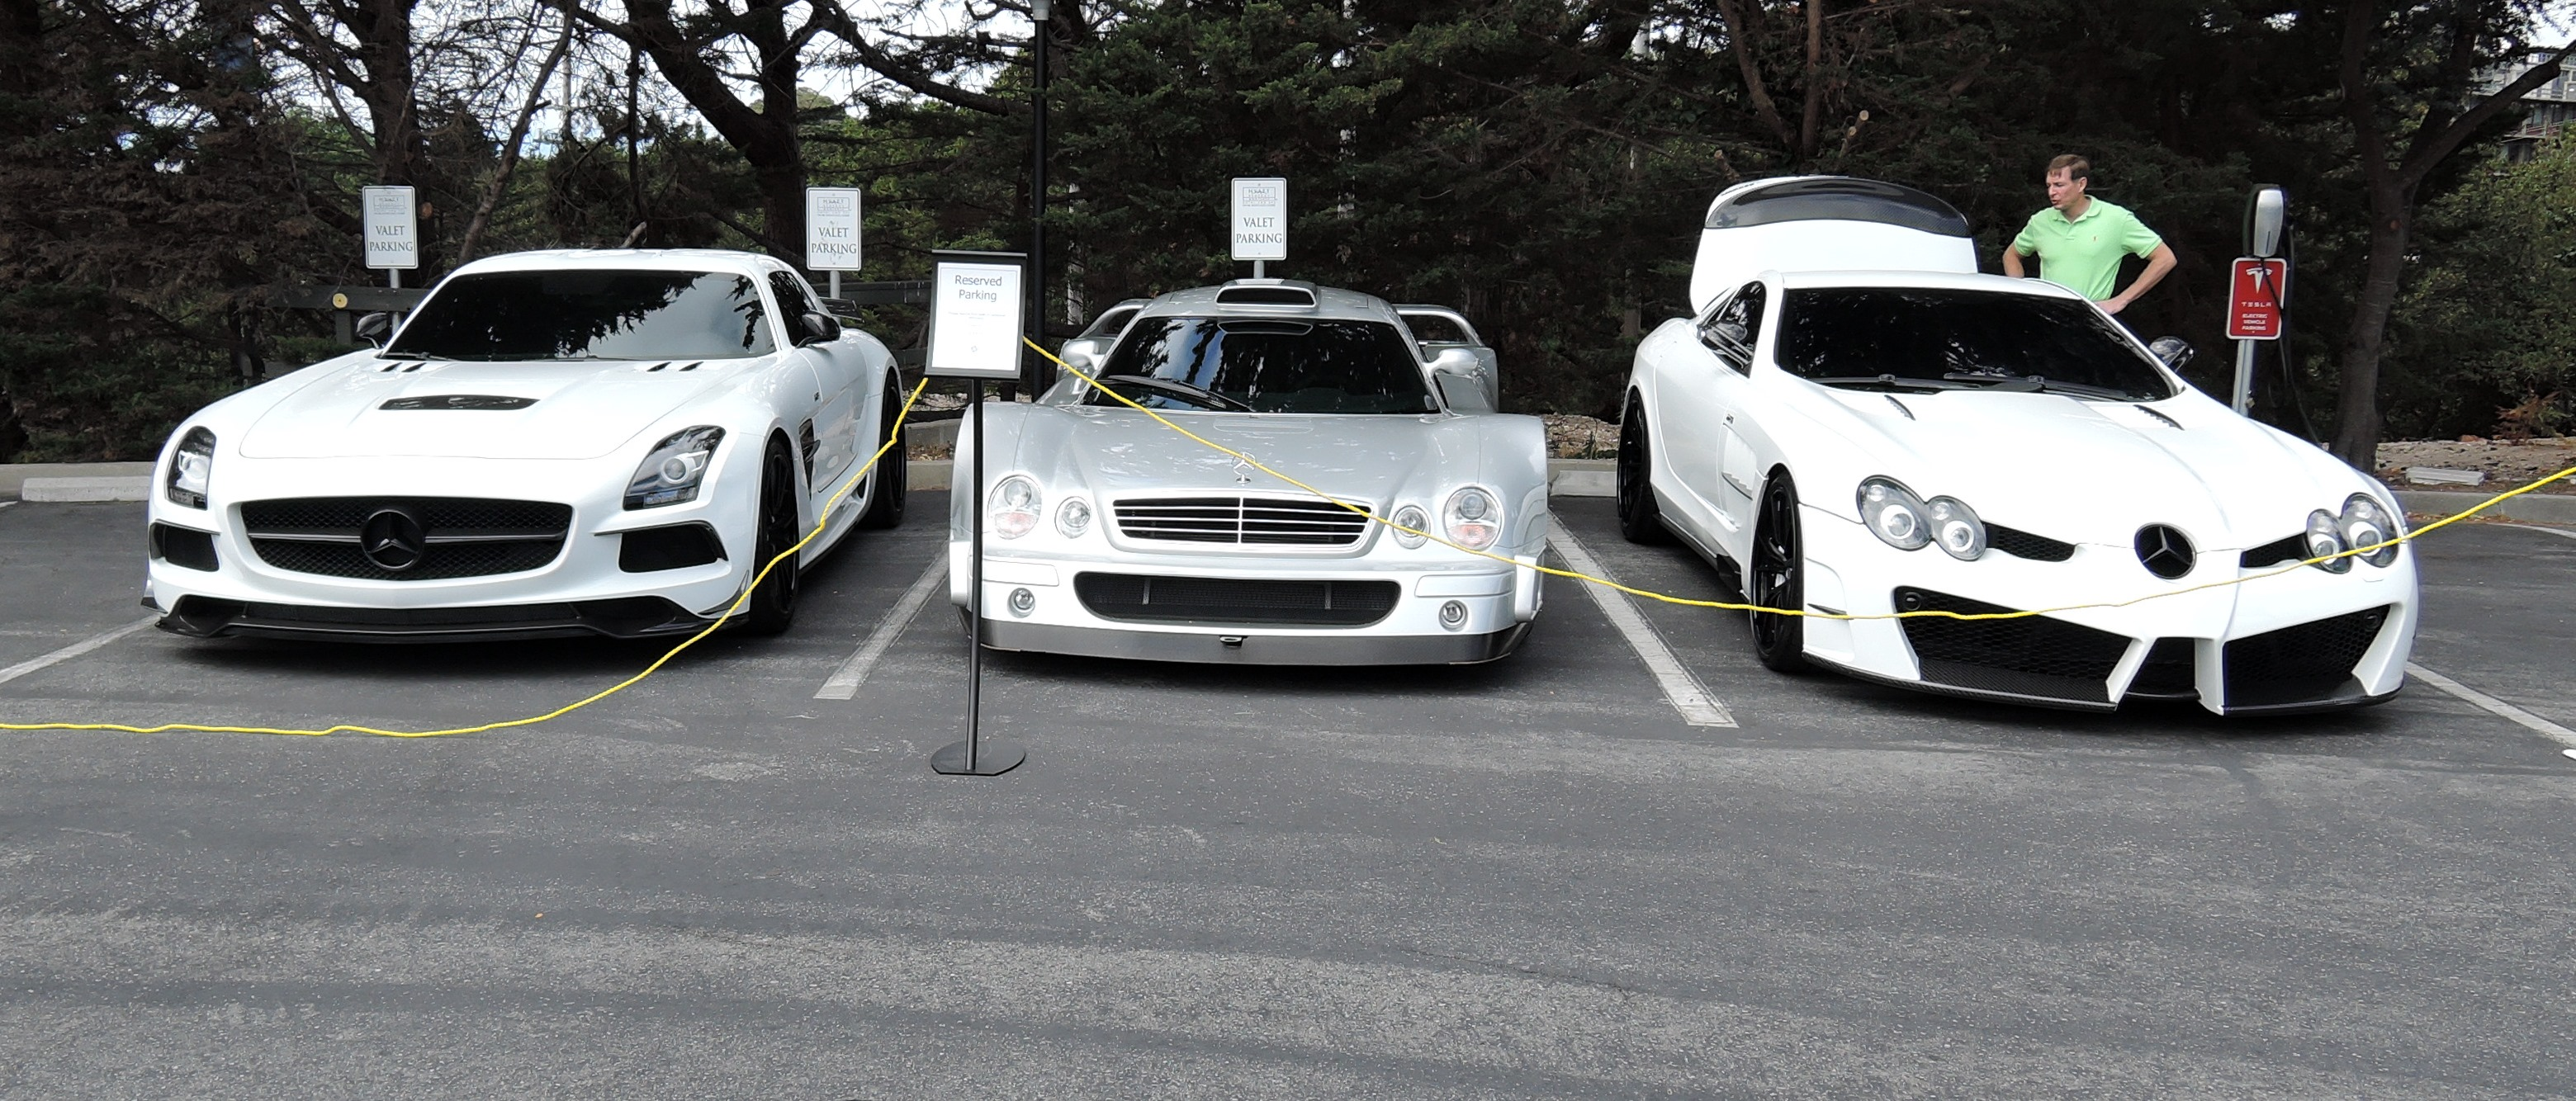 white MB SLS MB CLK GTR MB SLR - monterey car week